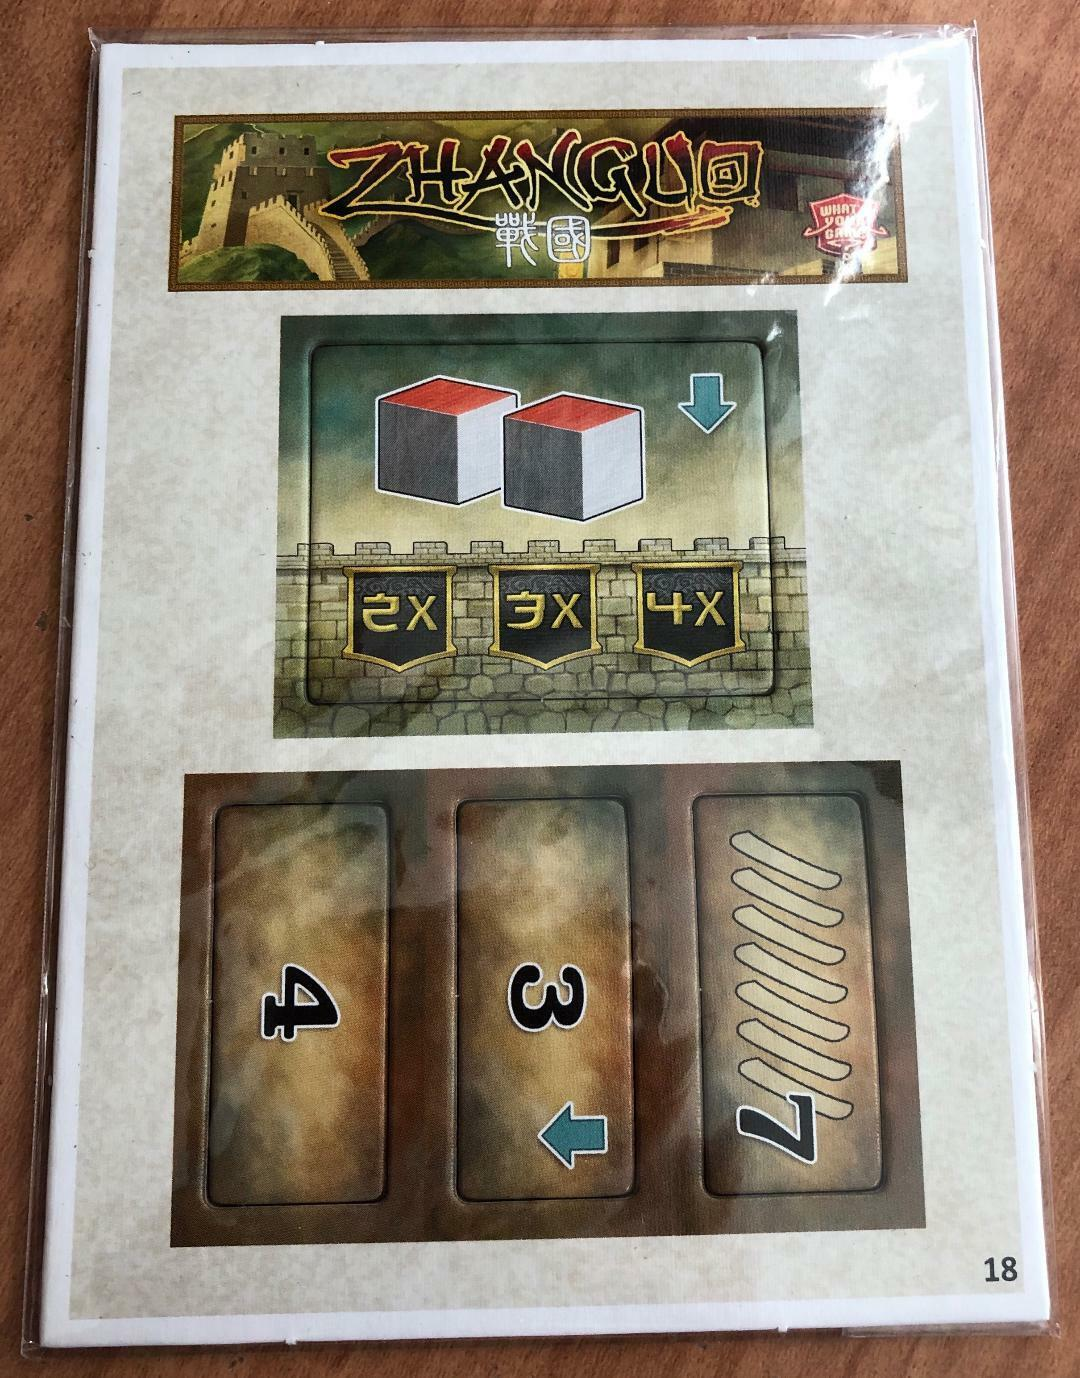 ZhanGuo TASK AND WALL Promo 2015 Brettspiel Adventskalender Mini Exp